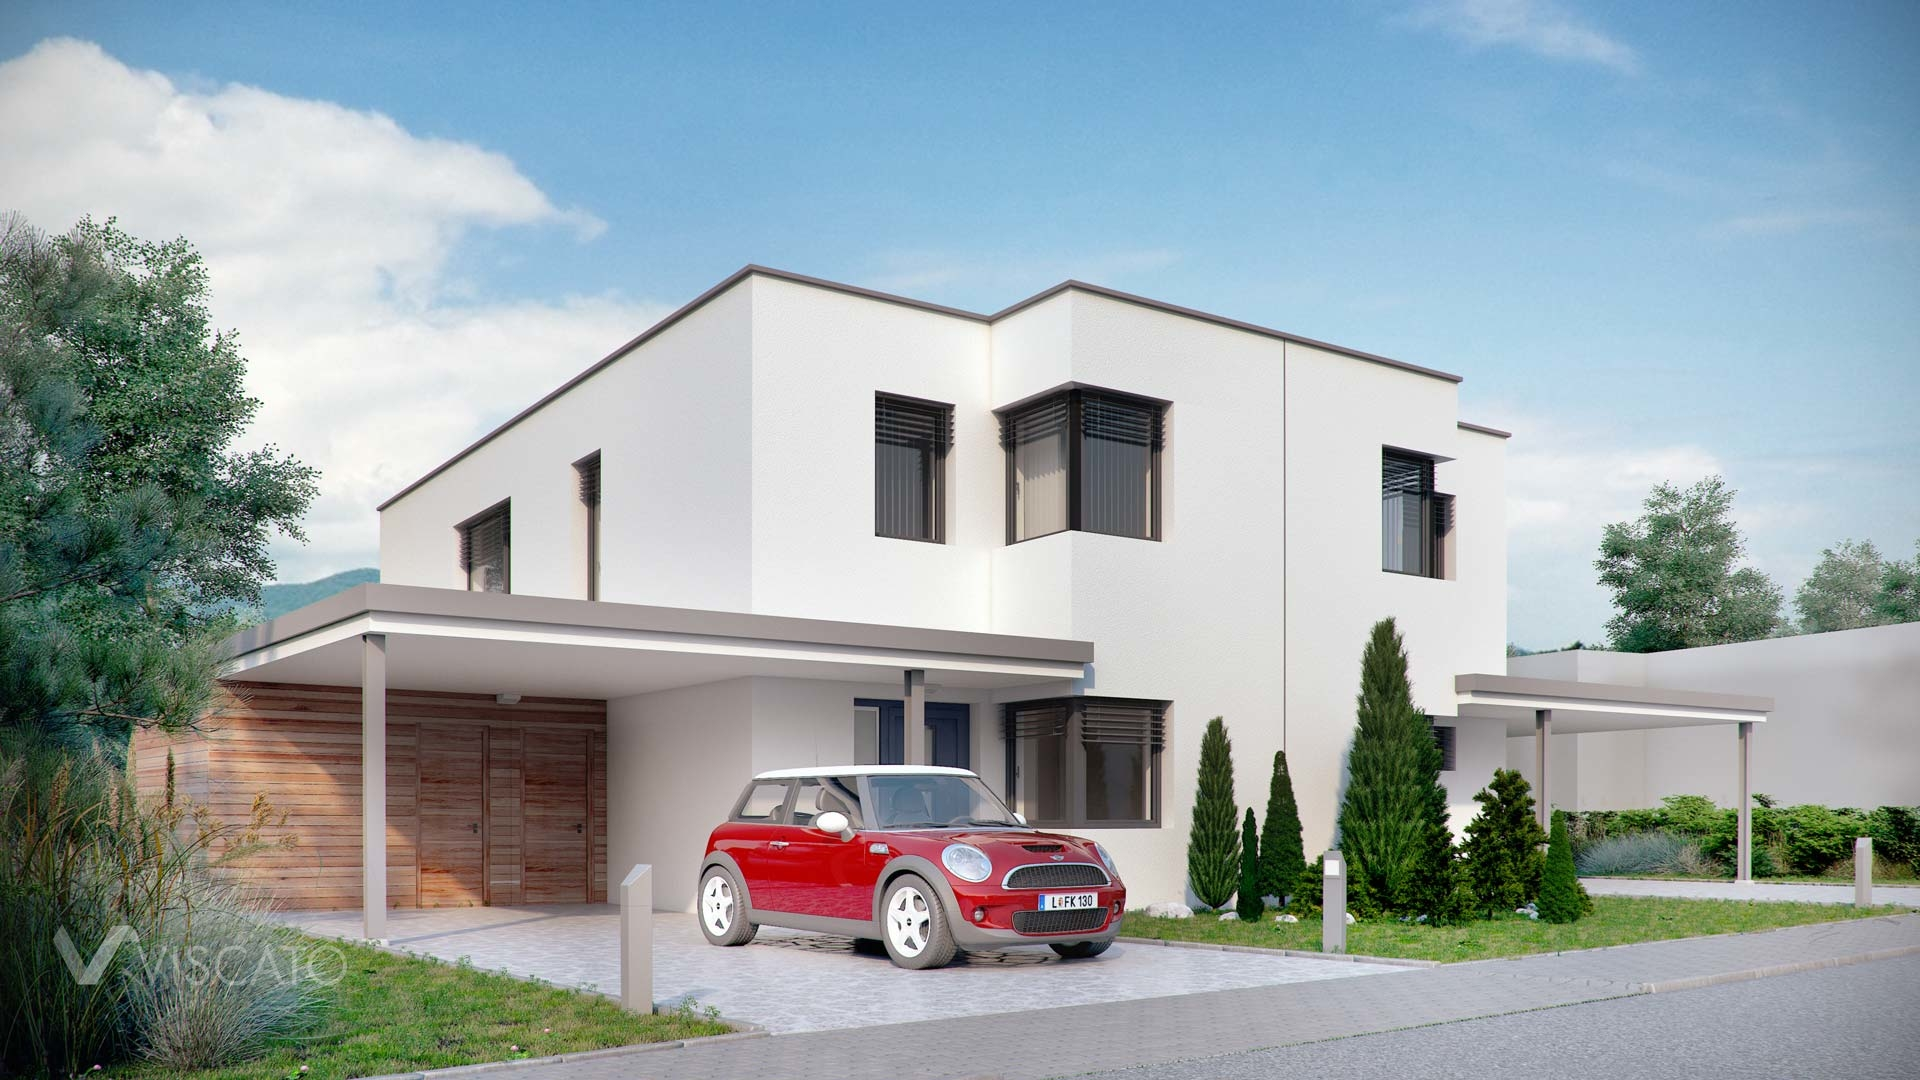 Linz twin house exterior visualization with car